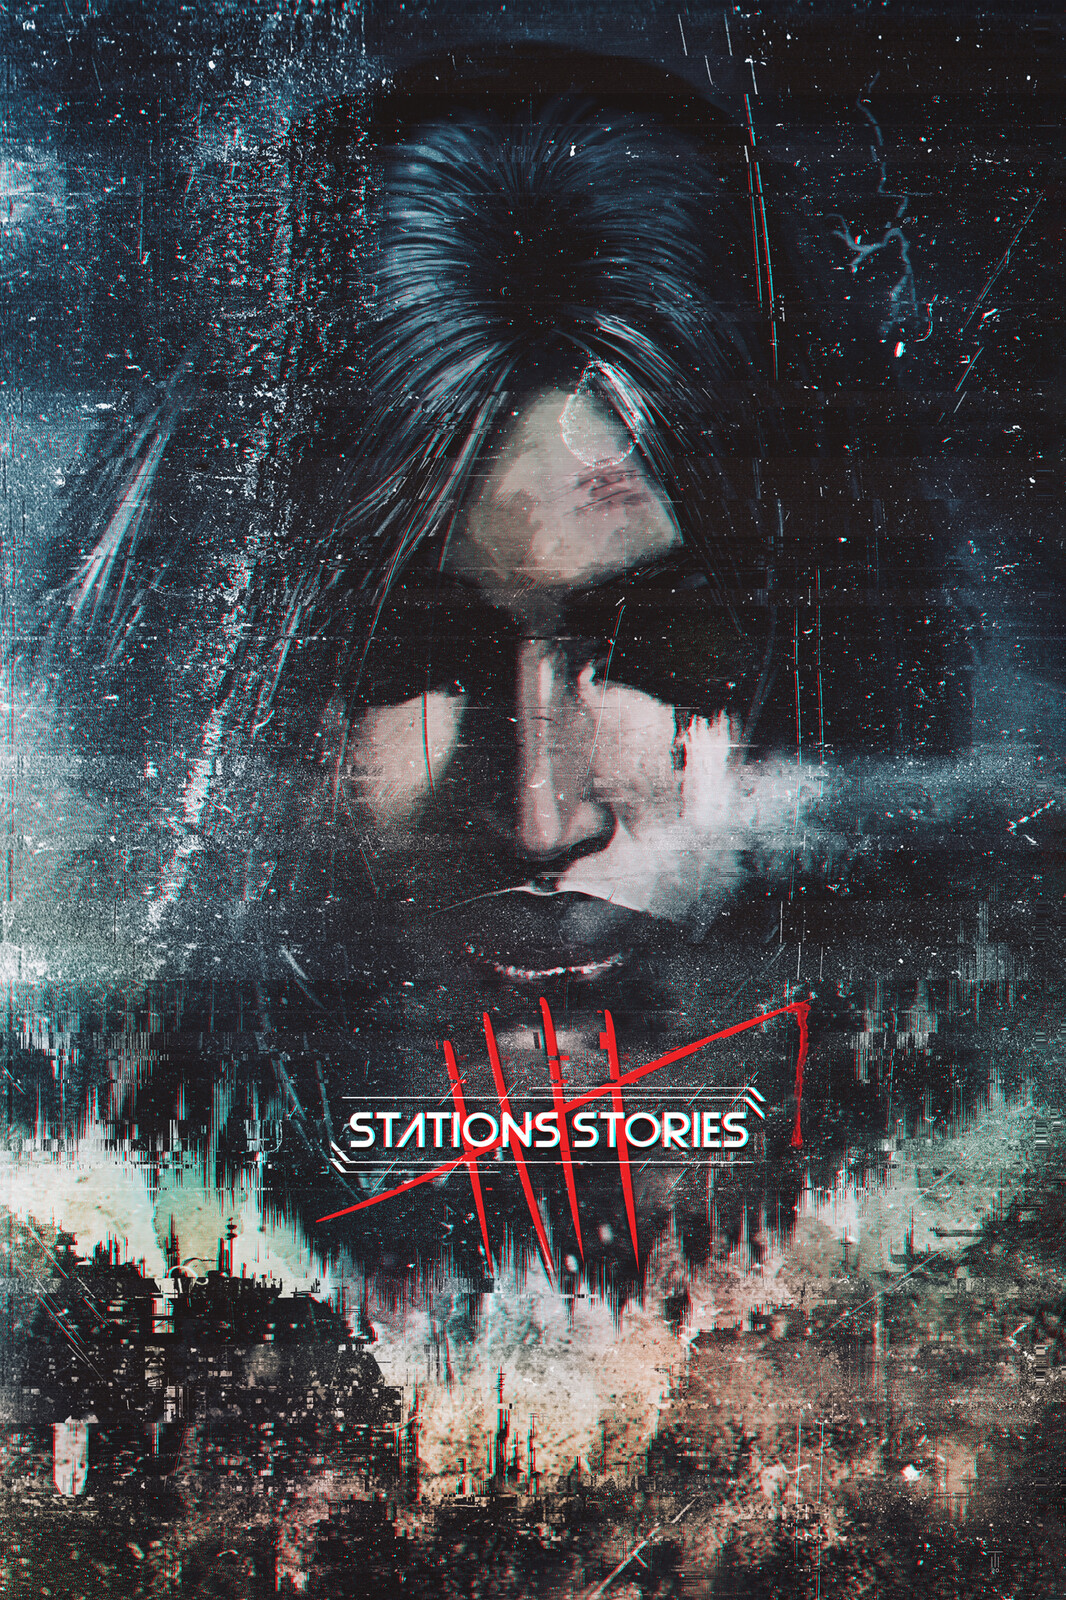 Stations Stories 5 EP Teaser Poster - Glitch Series Premuim Print